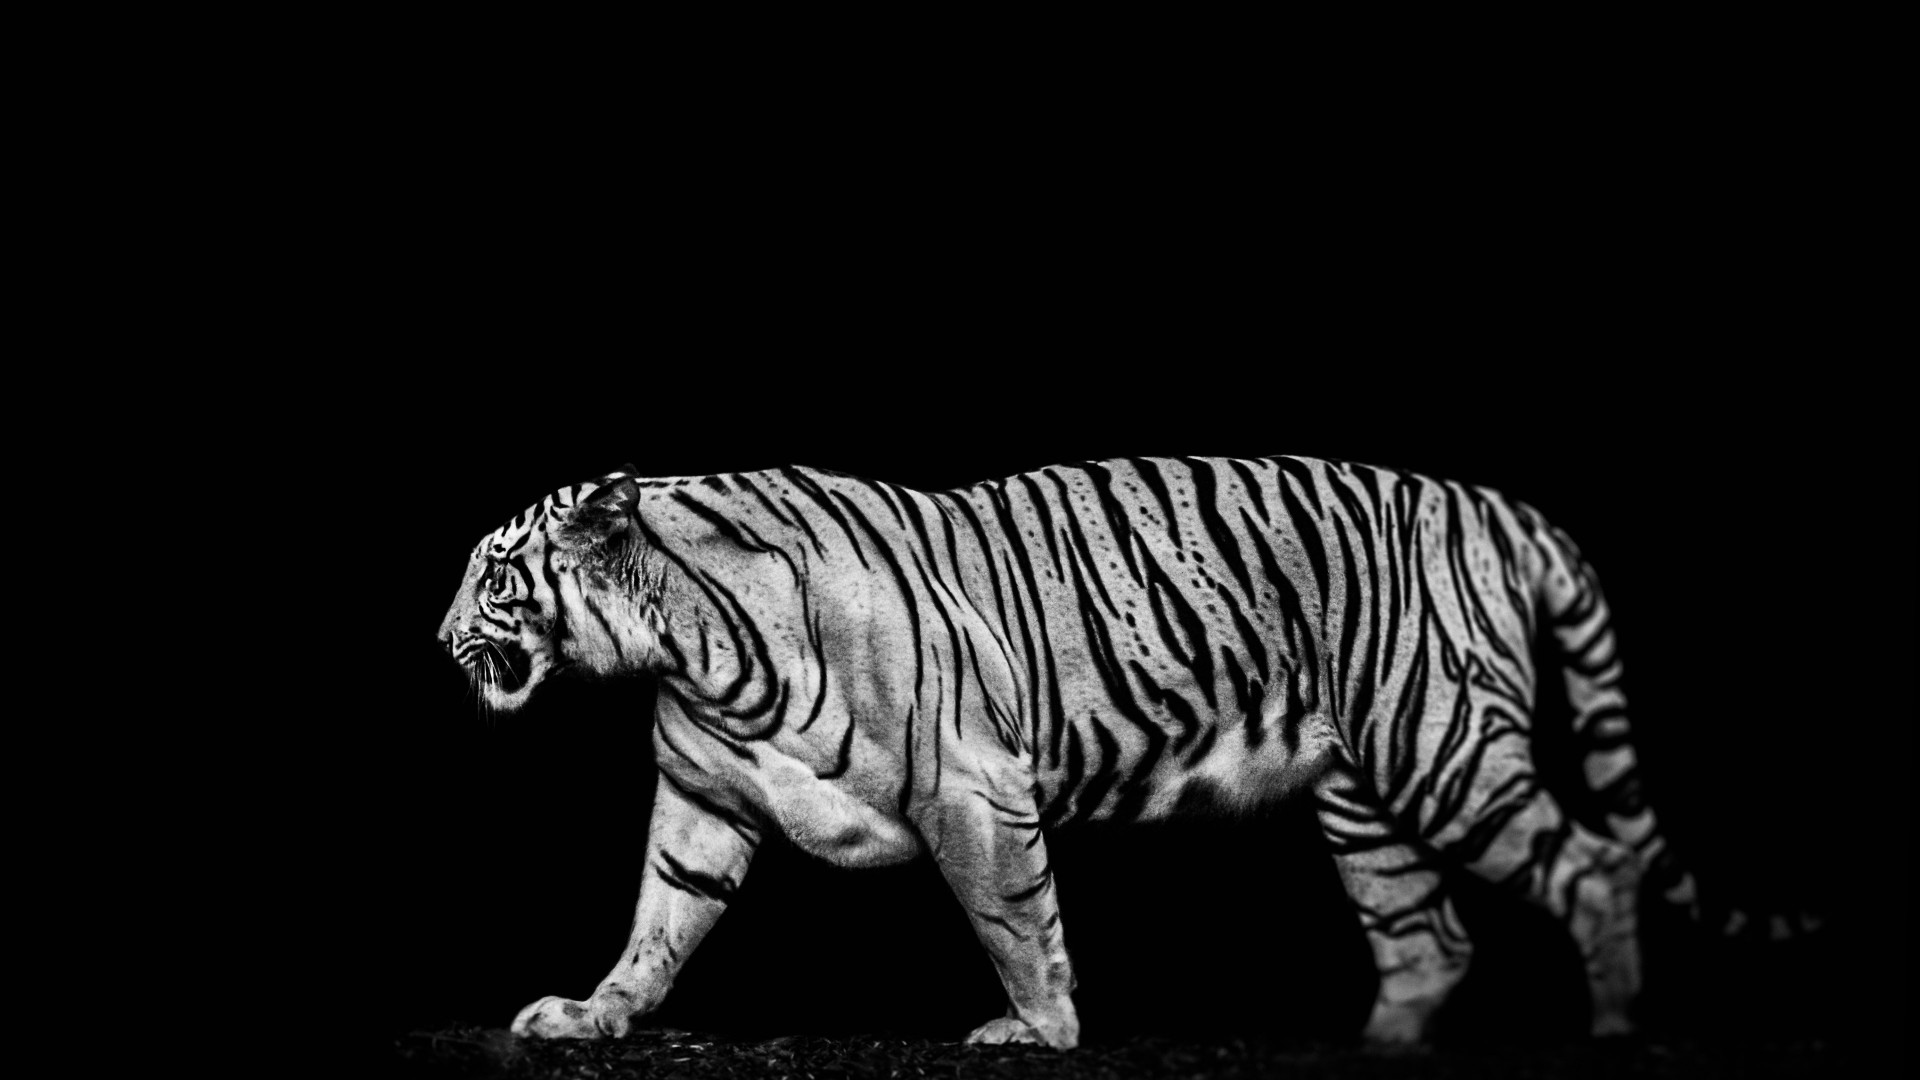 Tiger in the darkness | 1920x1080 wallpaper